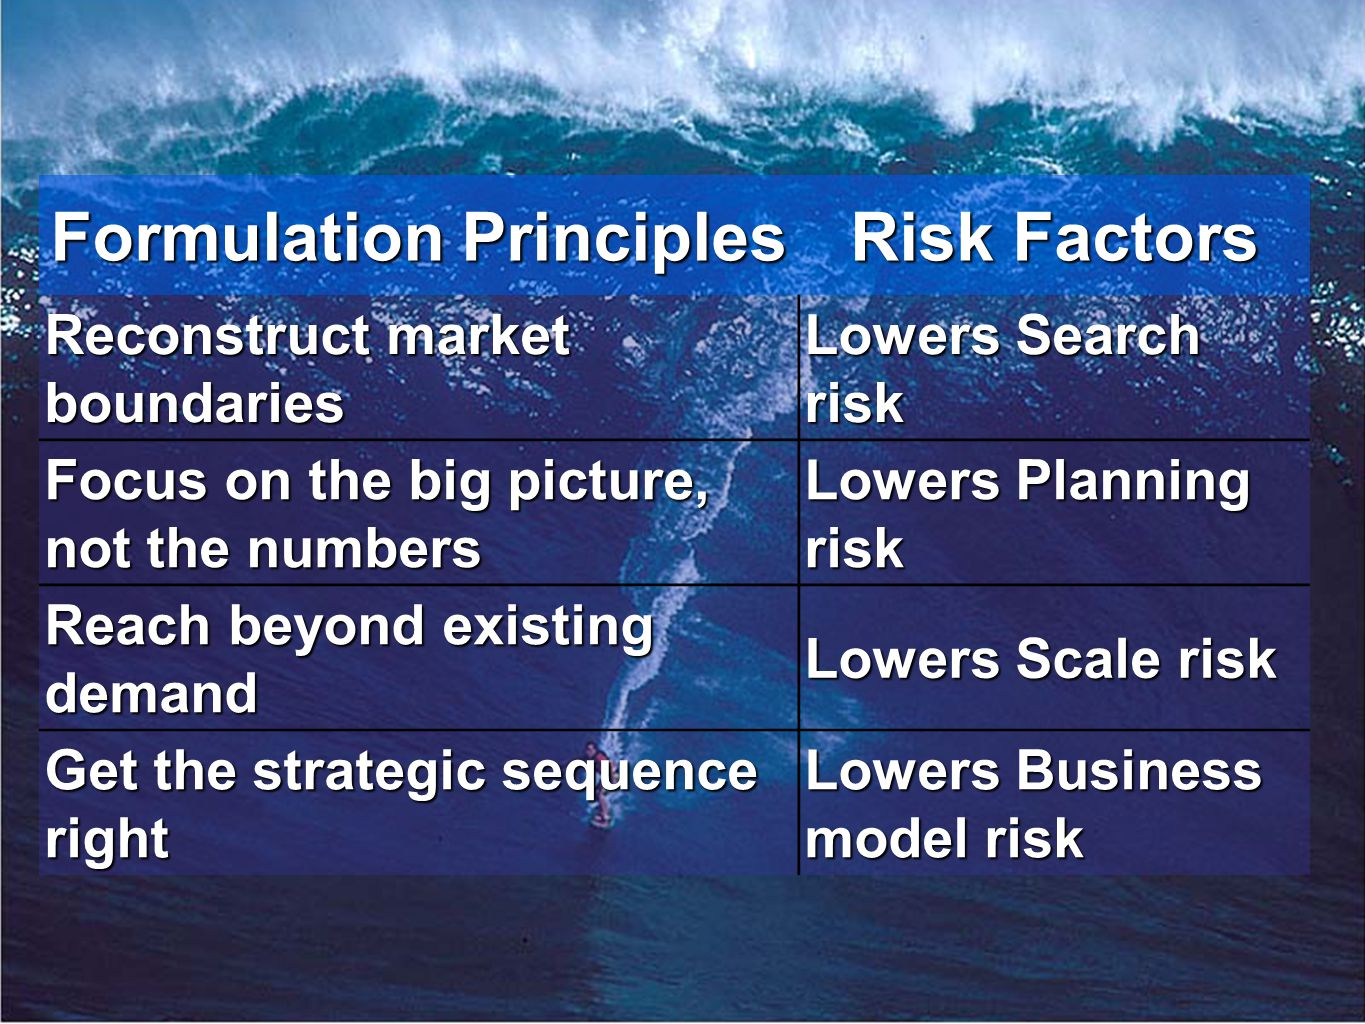 innovation.uccs.edu B ACHELOR OF I NNOVATION ™ Formulation Principles Risk Factors Reconstruct market boundaries Lowers Search risk Focus on the big picture, not the numbers Lowers Planning risk Reach beyond existing demand Lowers Scale risk Get the strategic sequence right Lowers Business model risk